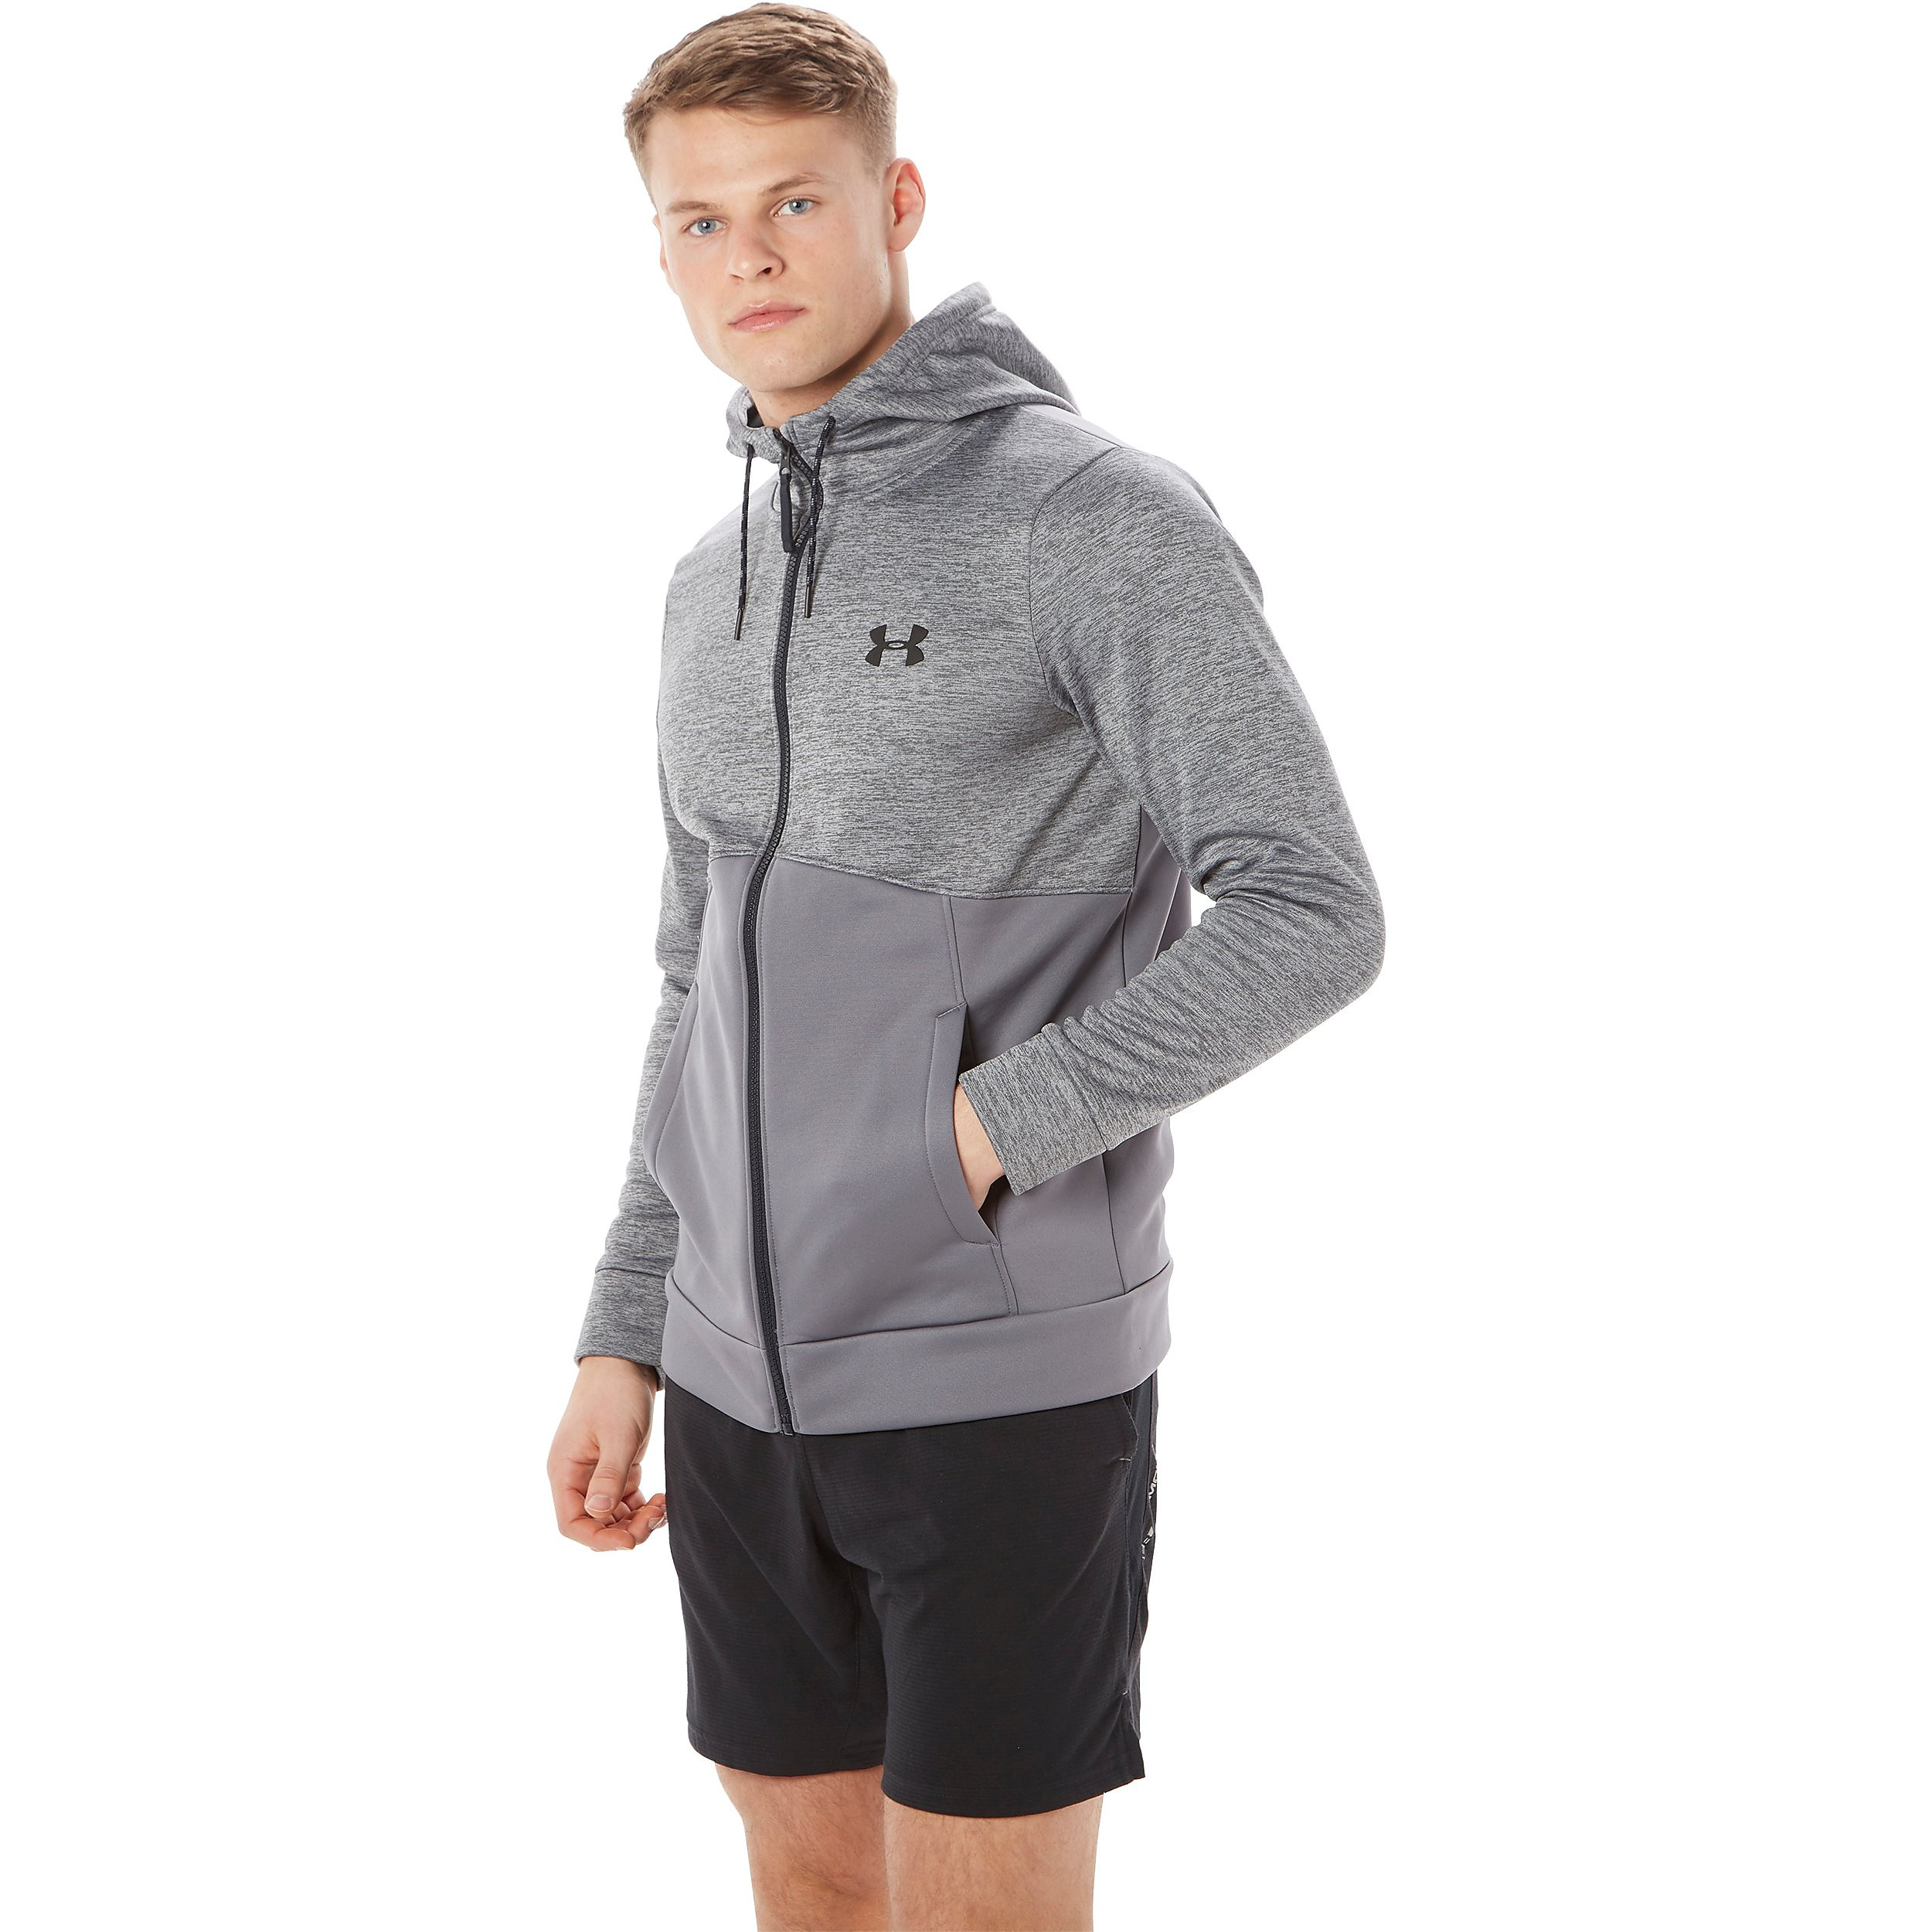 Under Armour Twist Poly Full Zip Hooded Men's Training Jacket